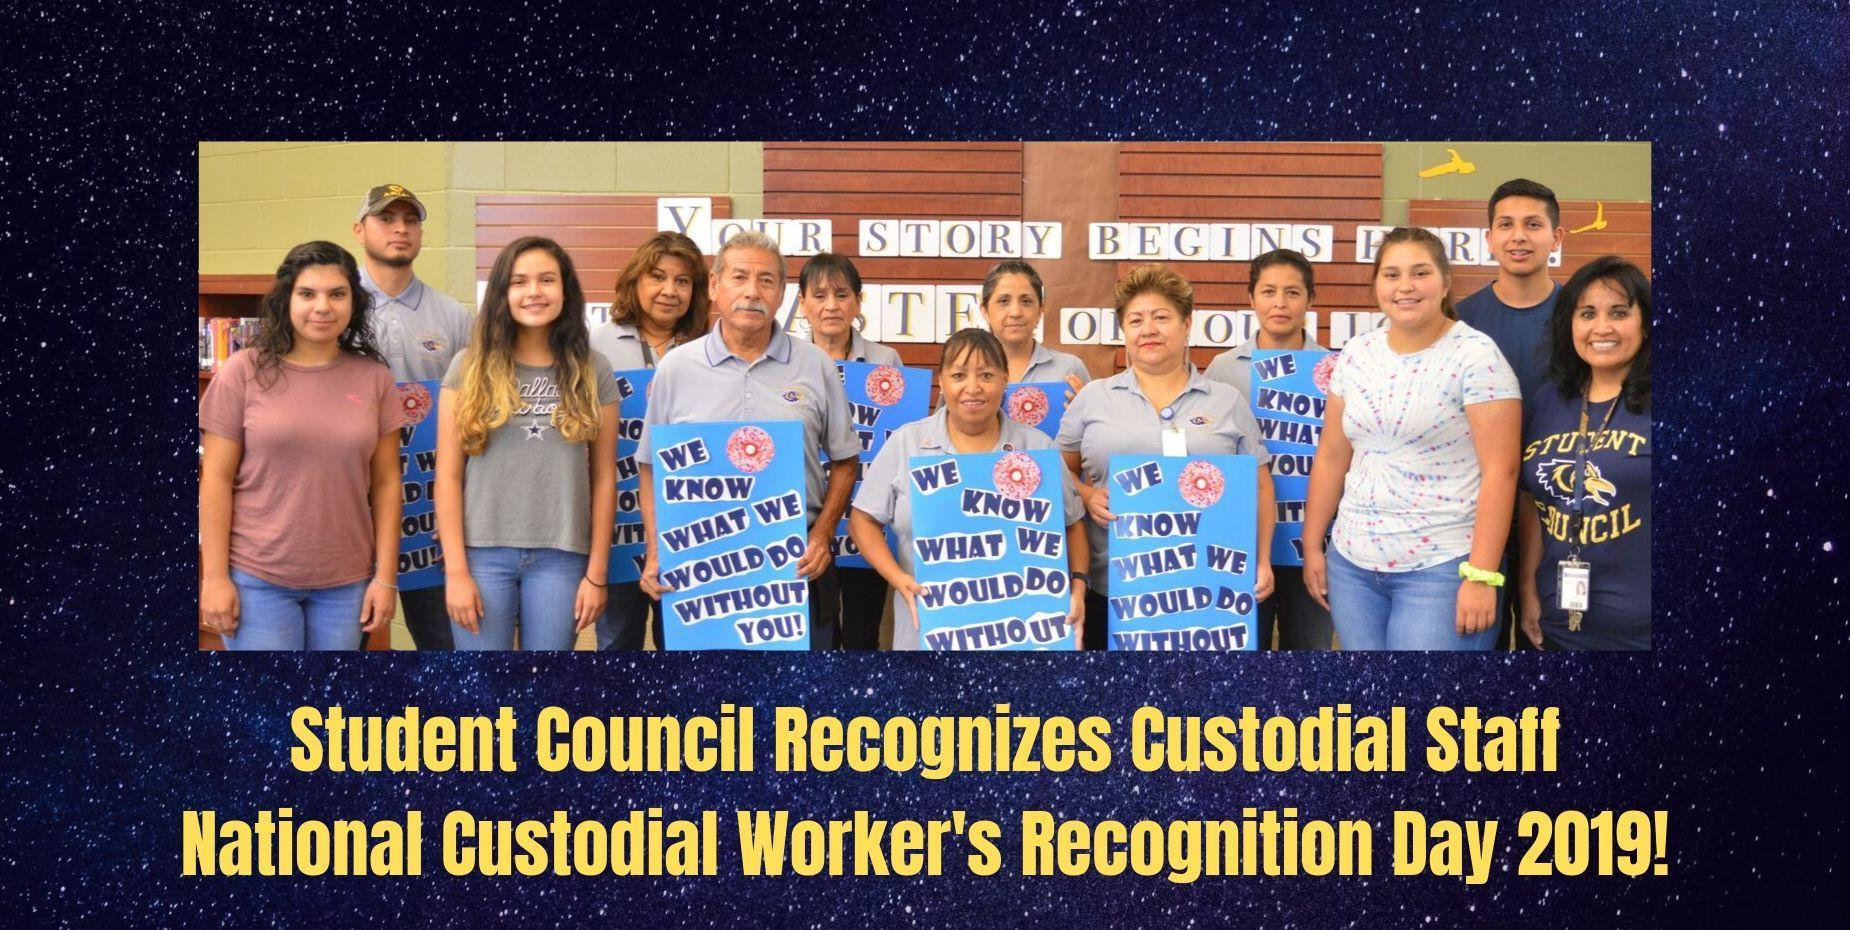 Student Council Recognizes Custodial Staff